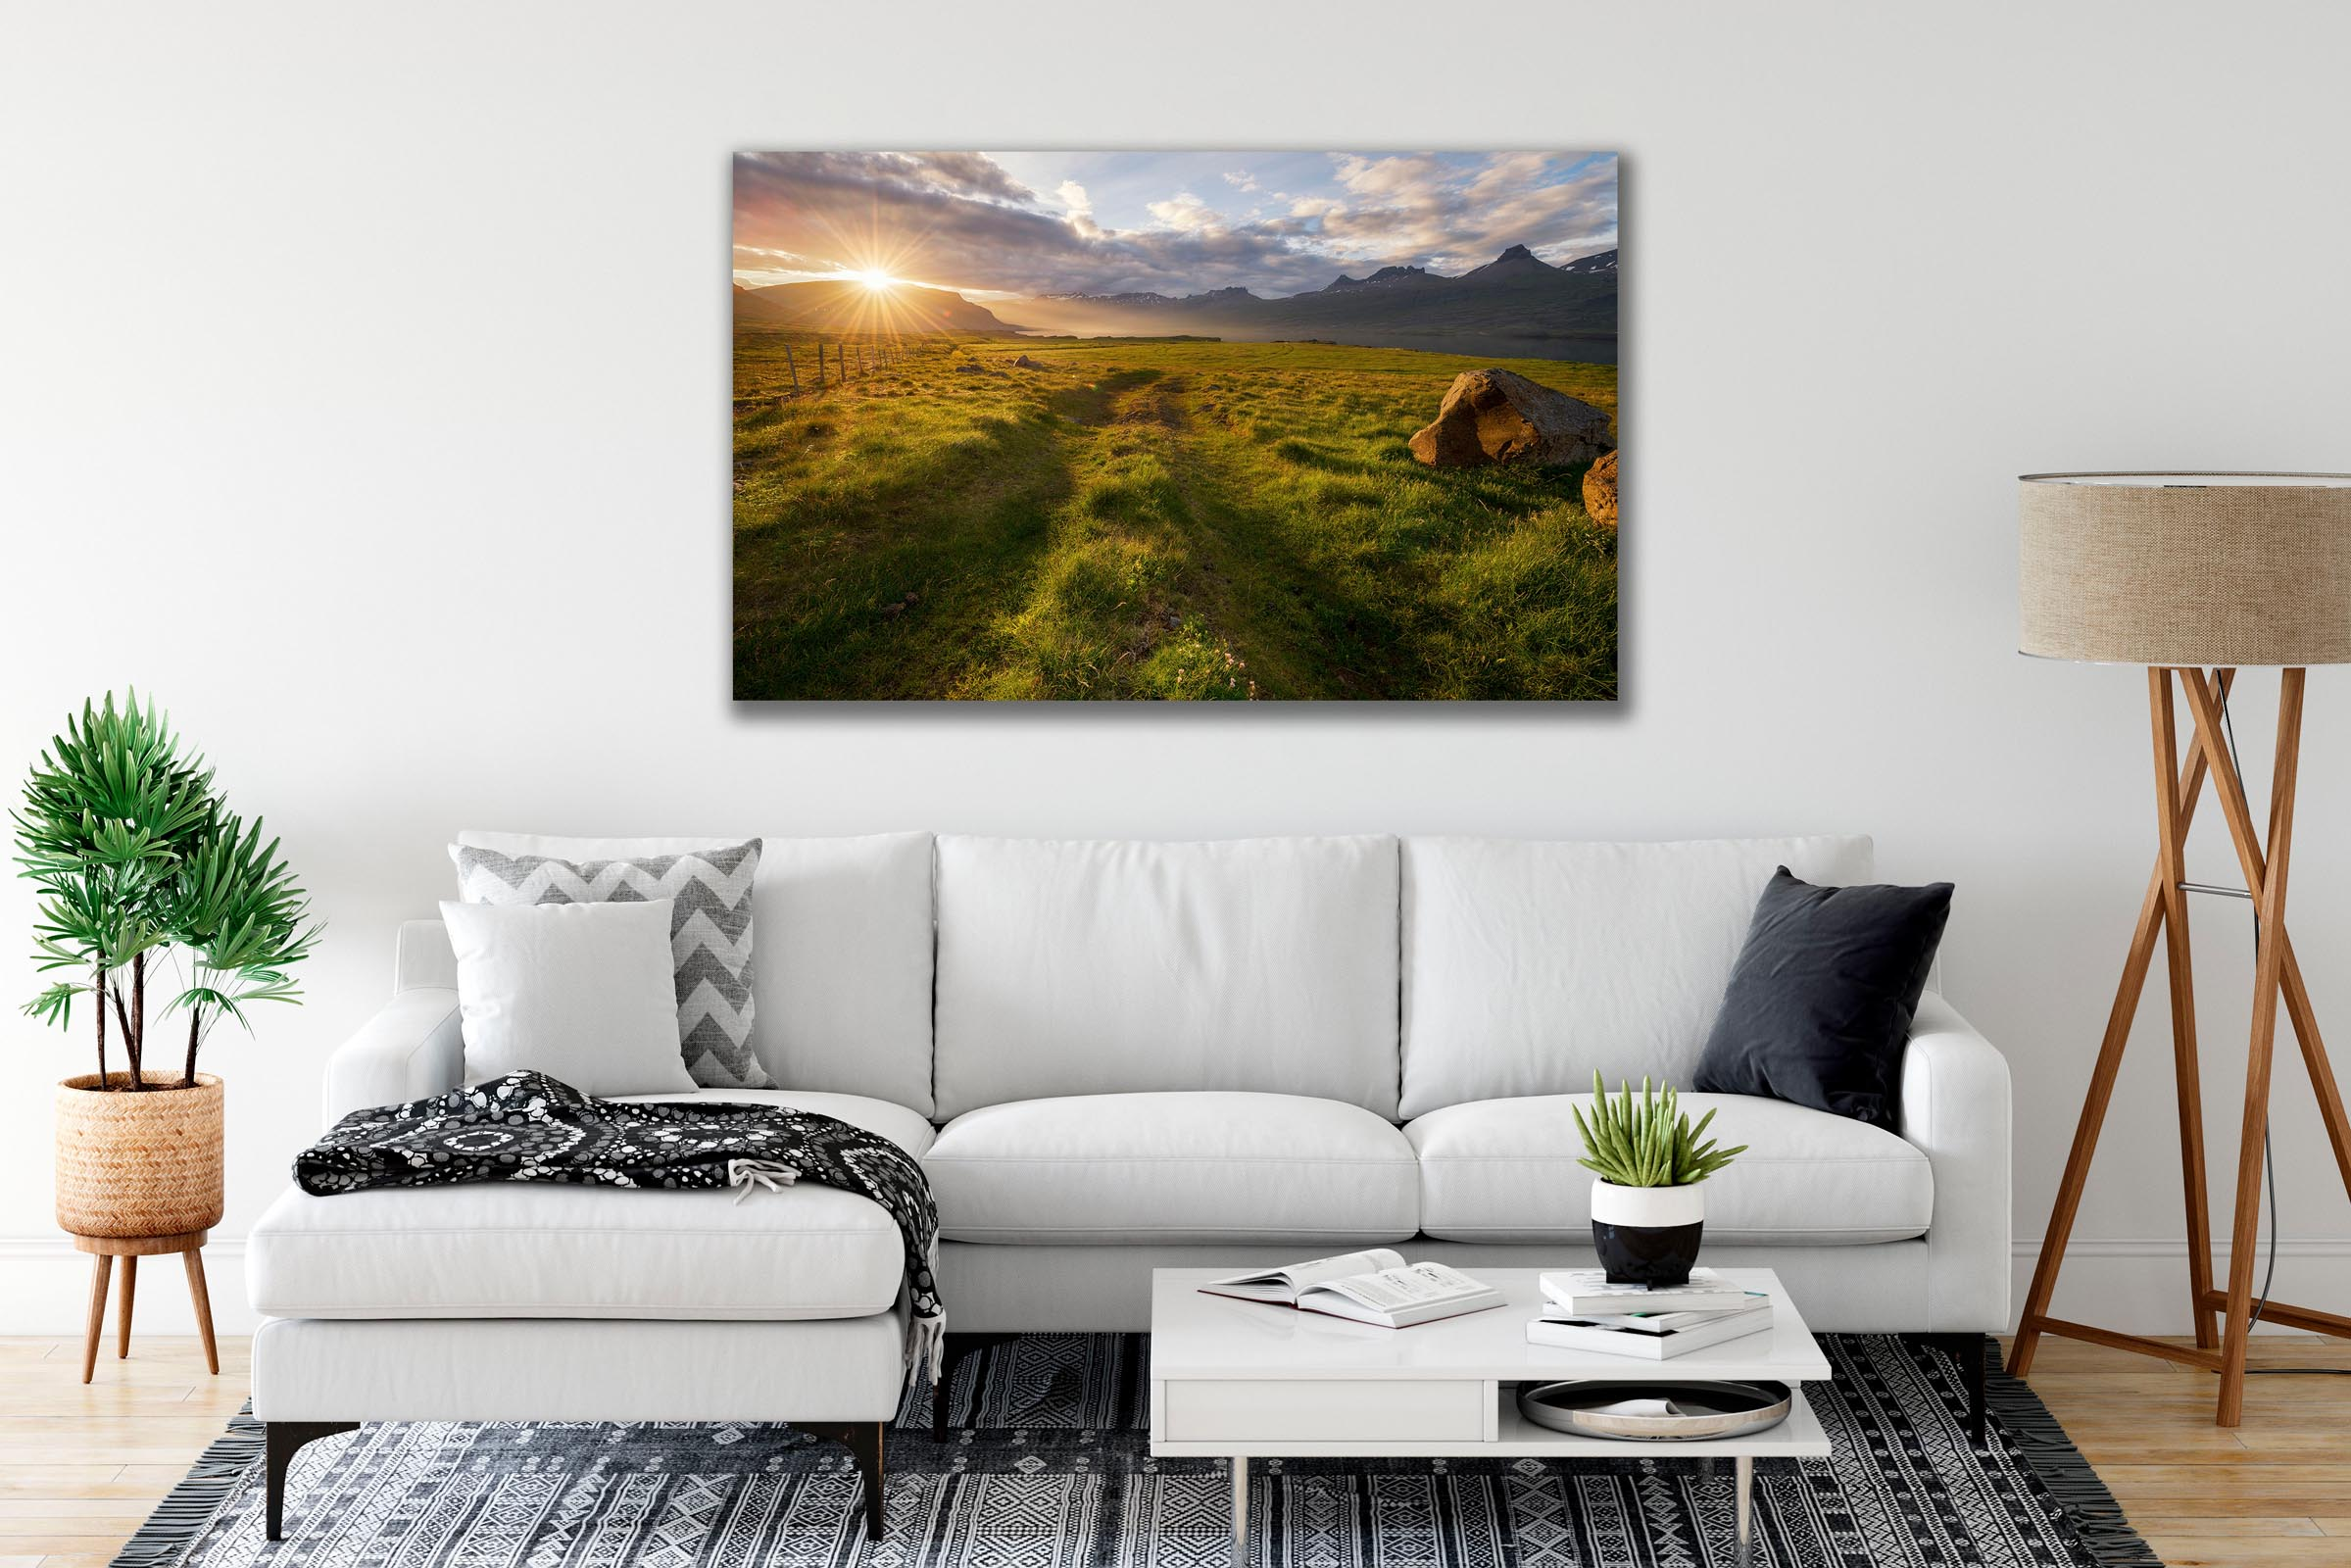 Wall art of Sunburst Meadow in Djupivogur, Iceland by Brent Goldman Photography